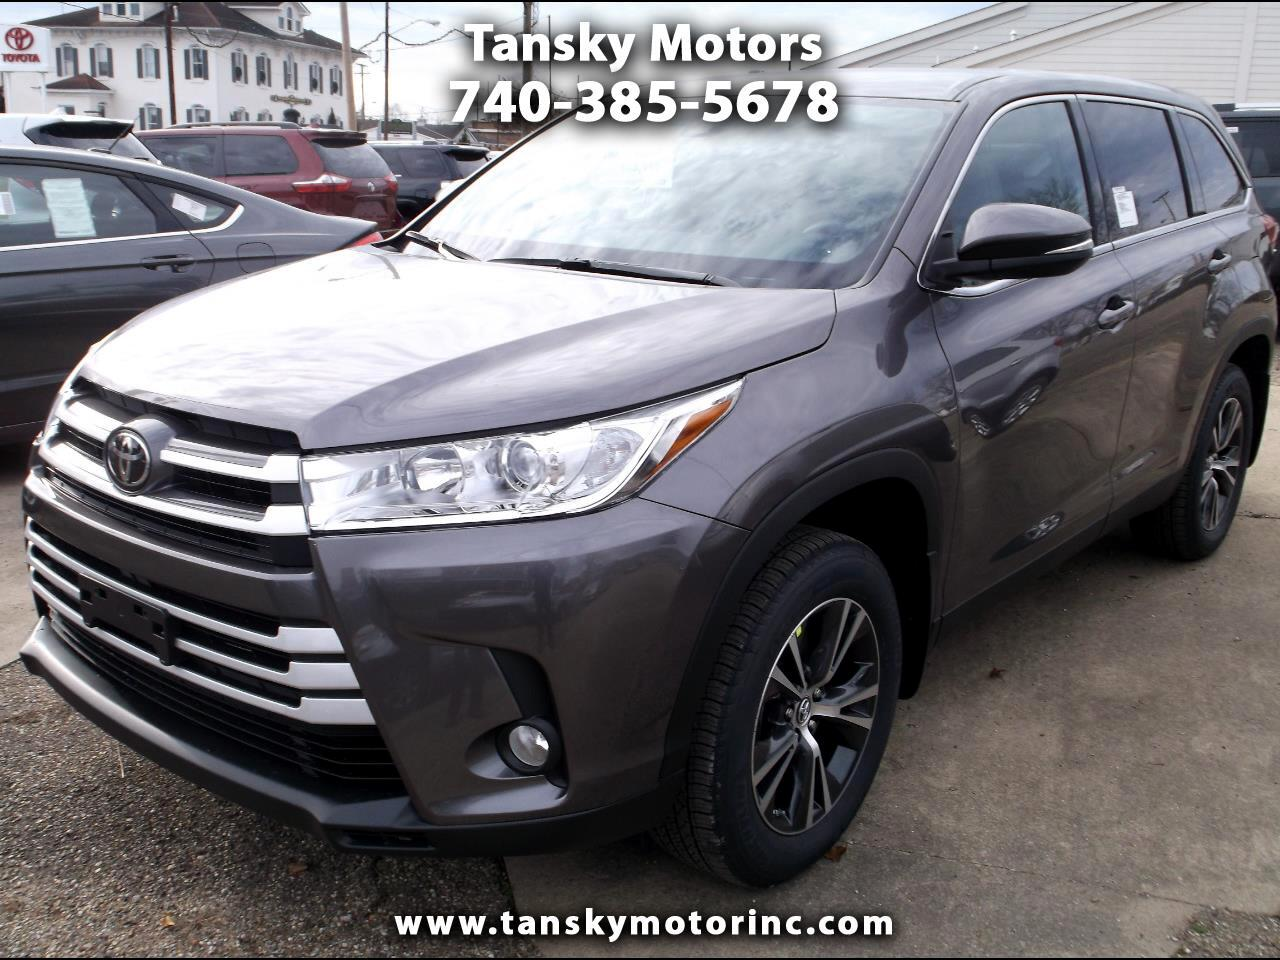 2019 Toyota Highlander AWD 4dr V6 LE Plus (Natl)